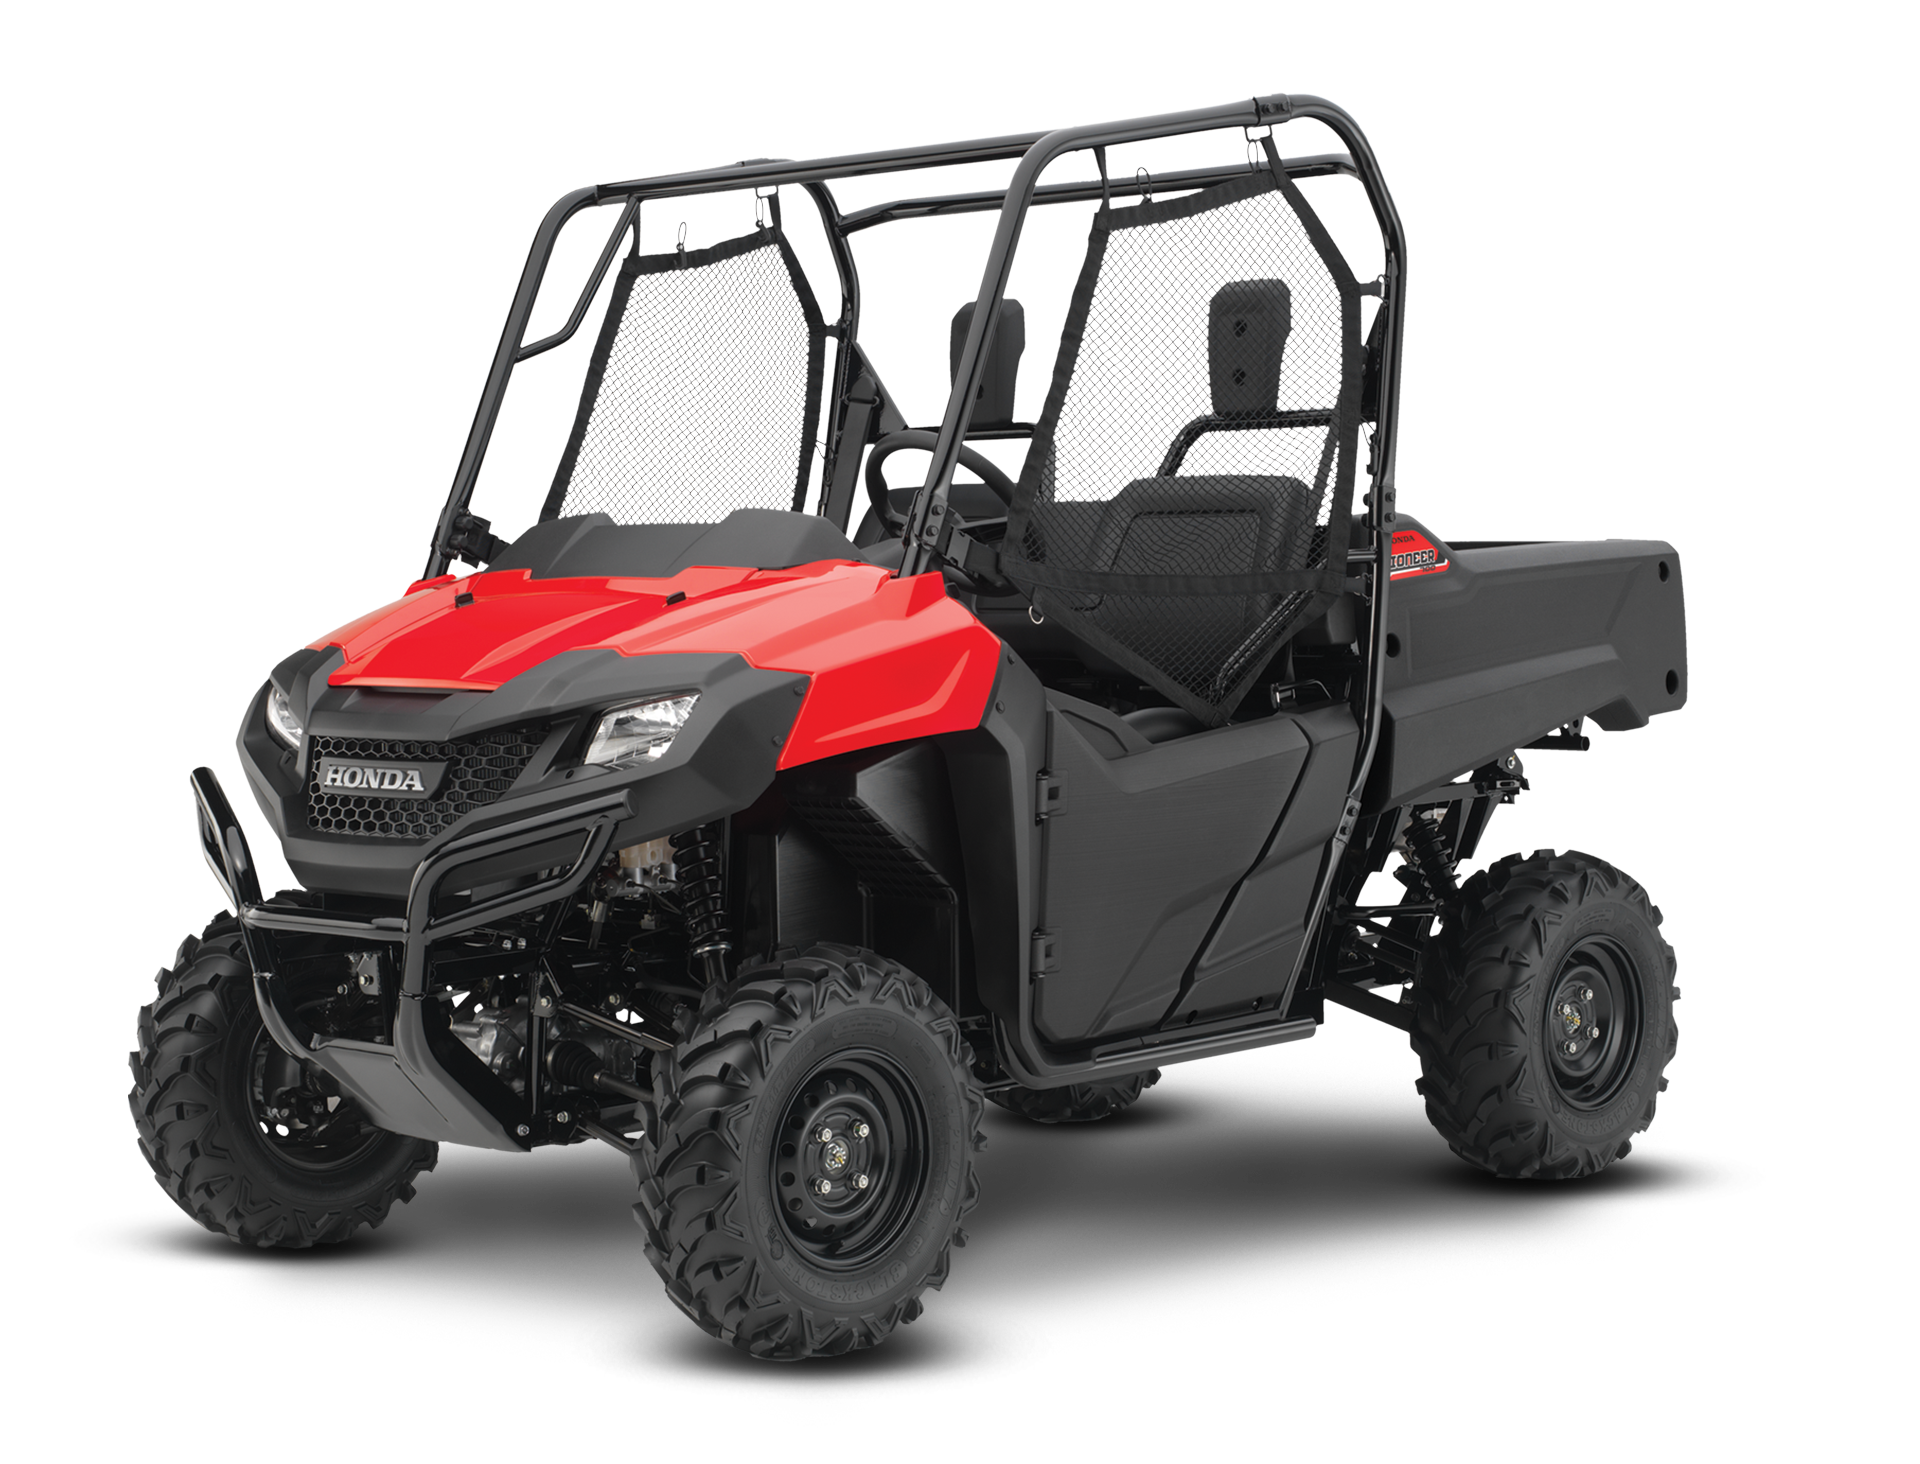 pioneer series honda atv side by side canada. Black Bedroom Furniture Sets. Home Design Ideas